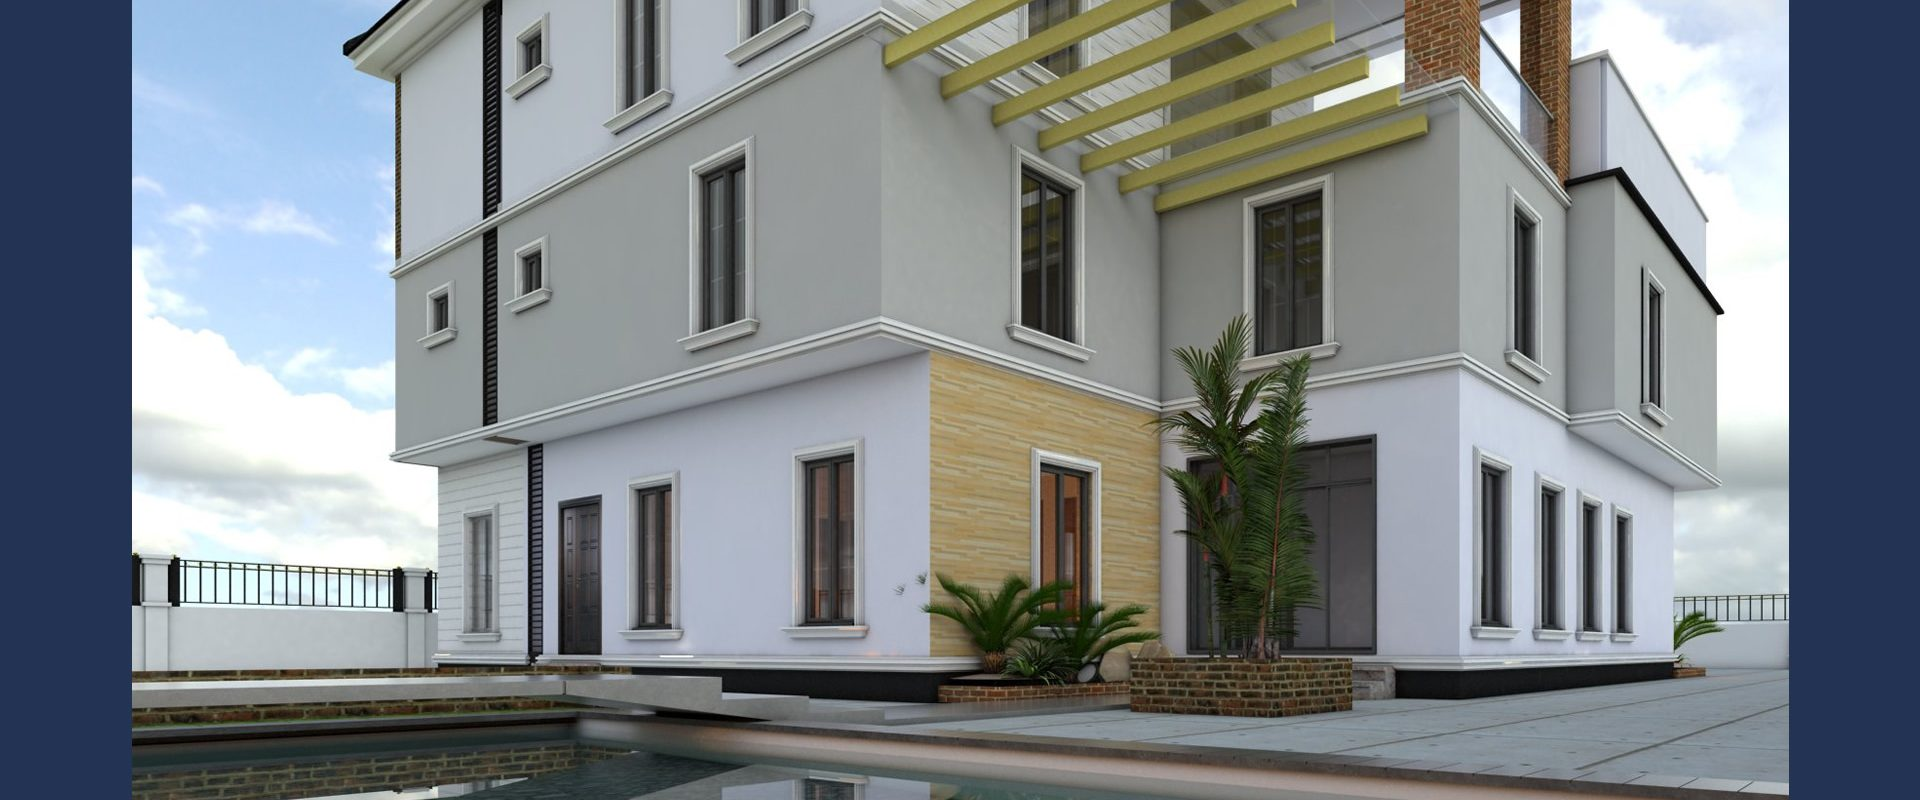 5-Bedroom Triplex with Swimming Pool